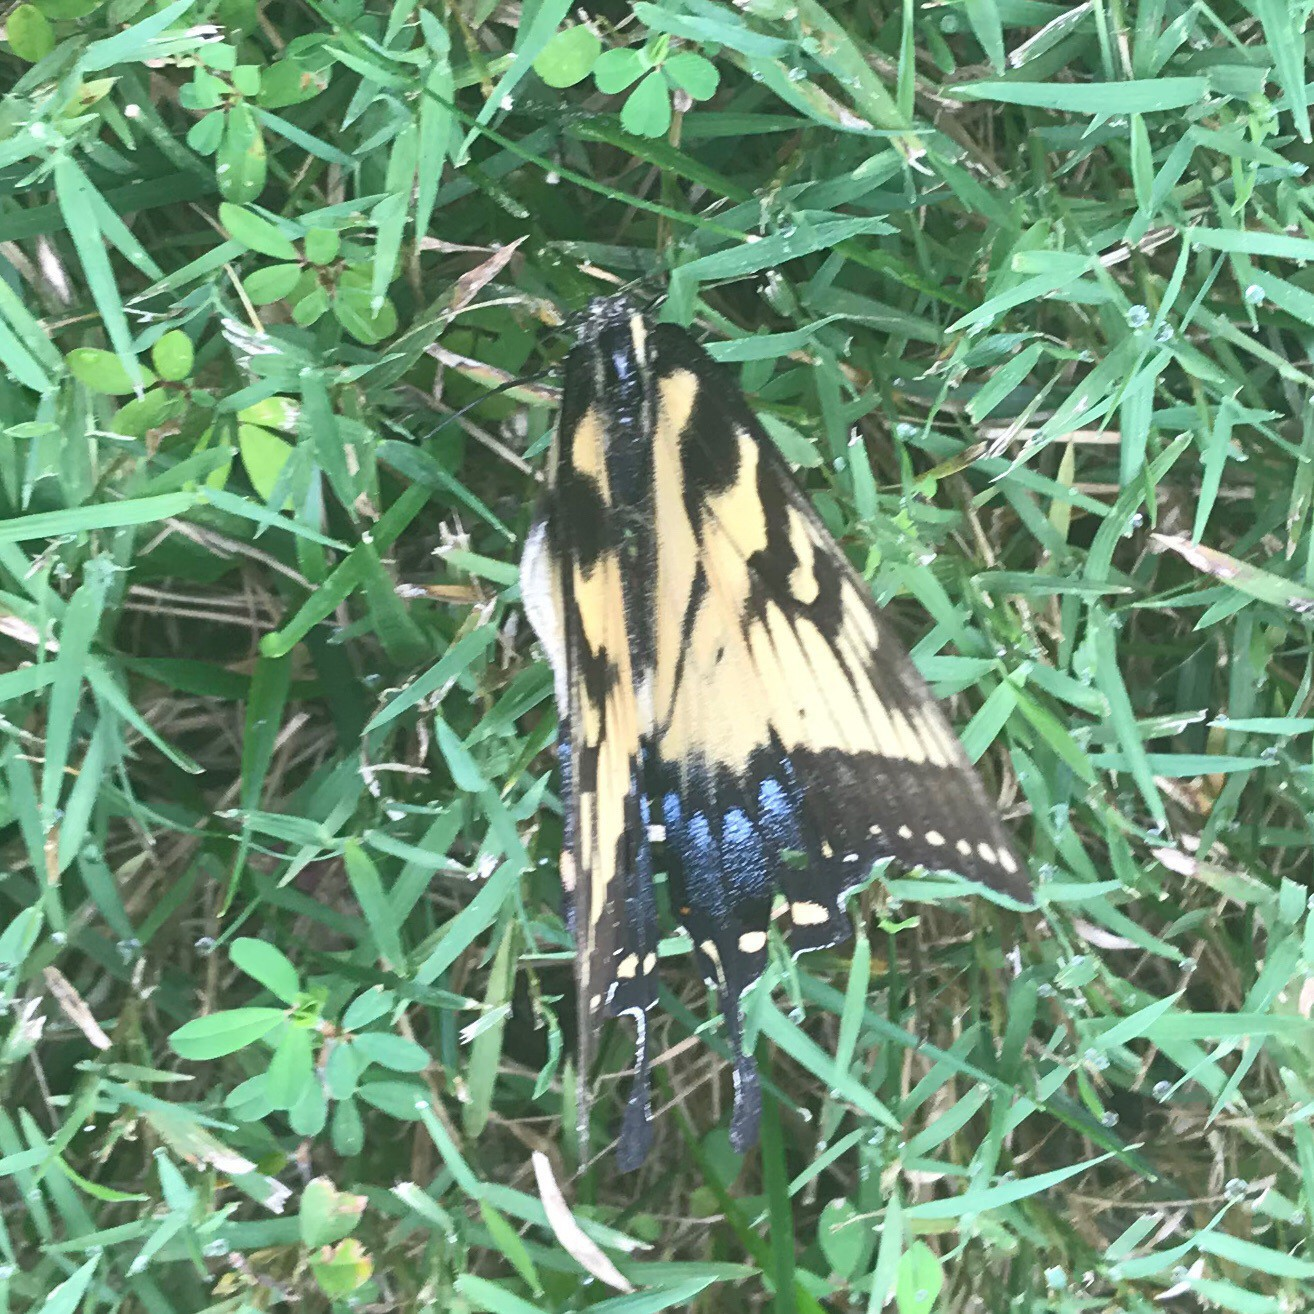 Butterfly found expired on Grass : 'Fluttered Bye'